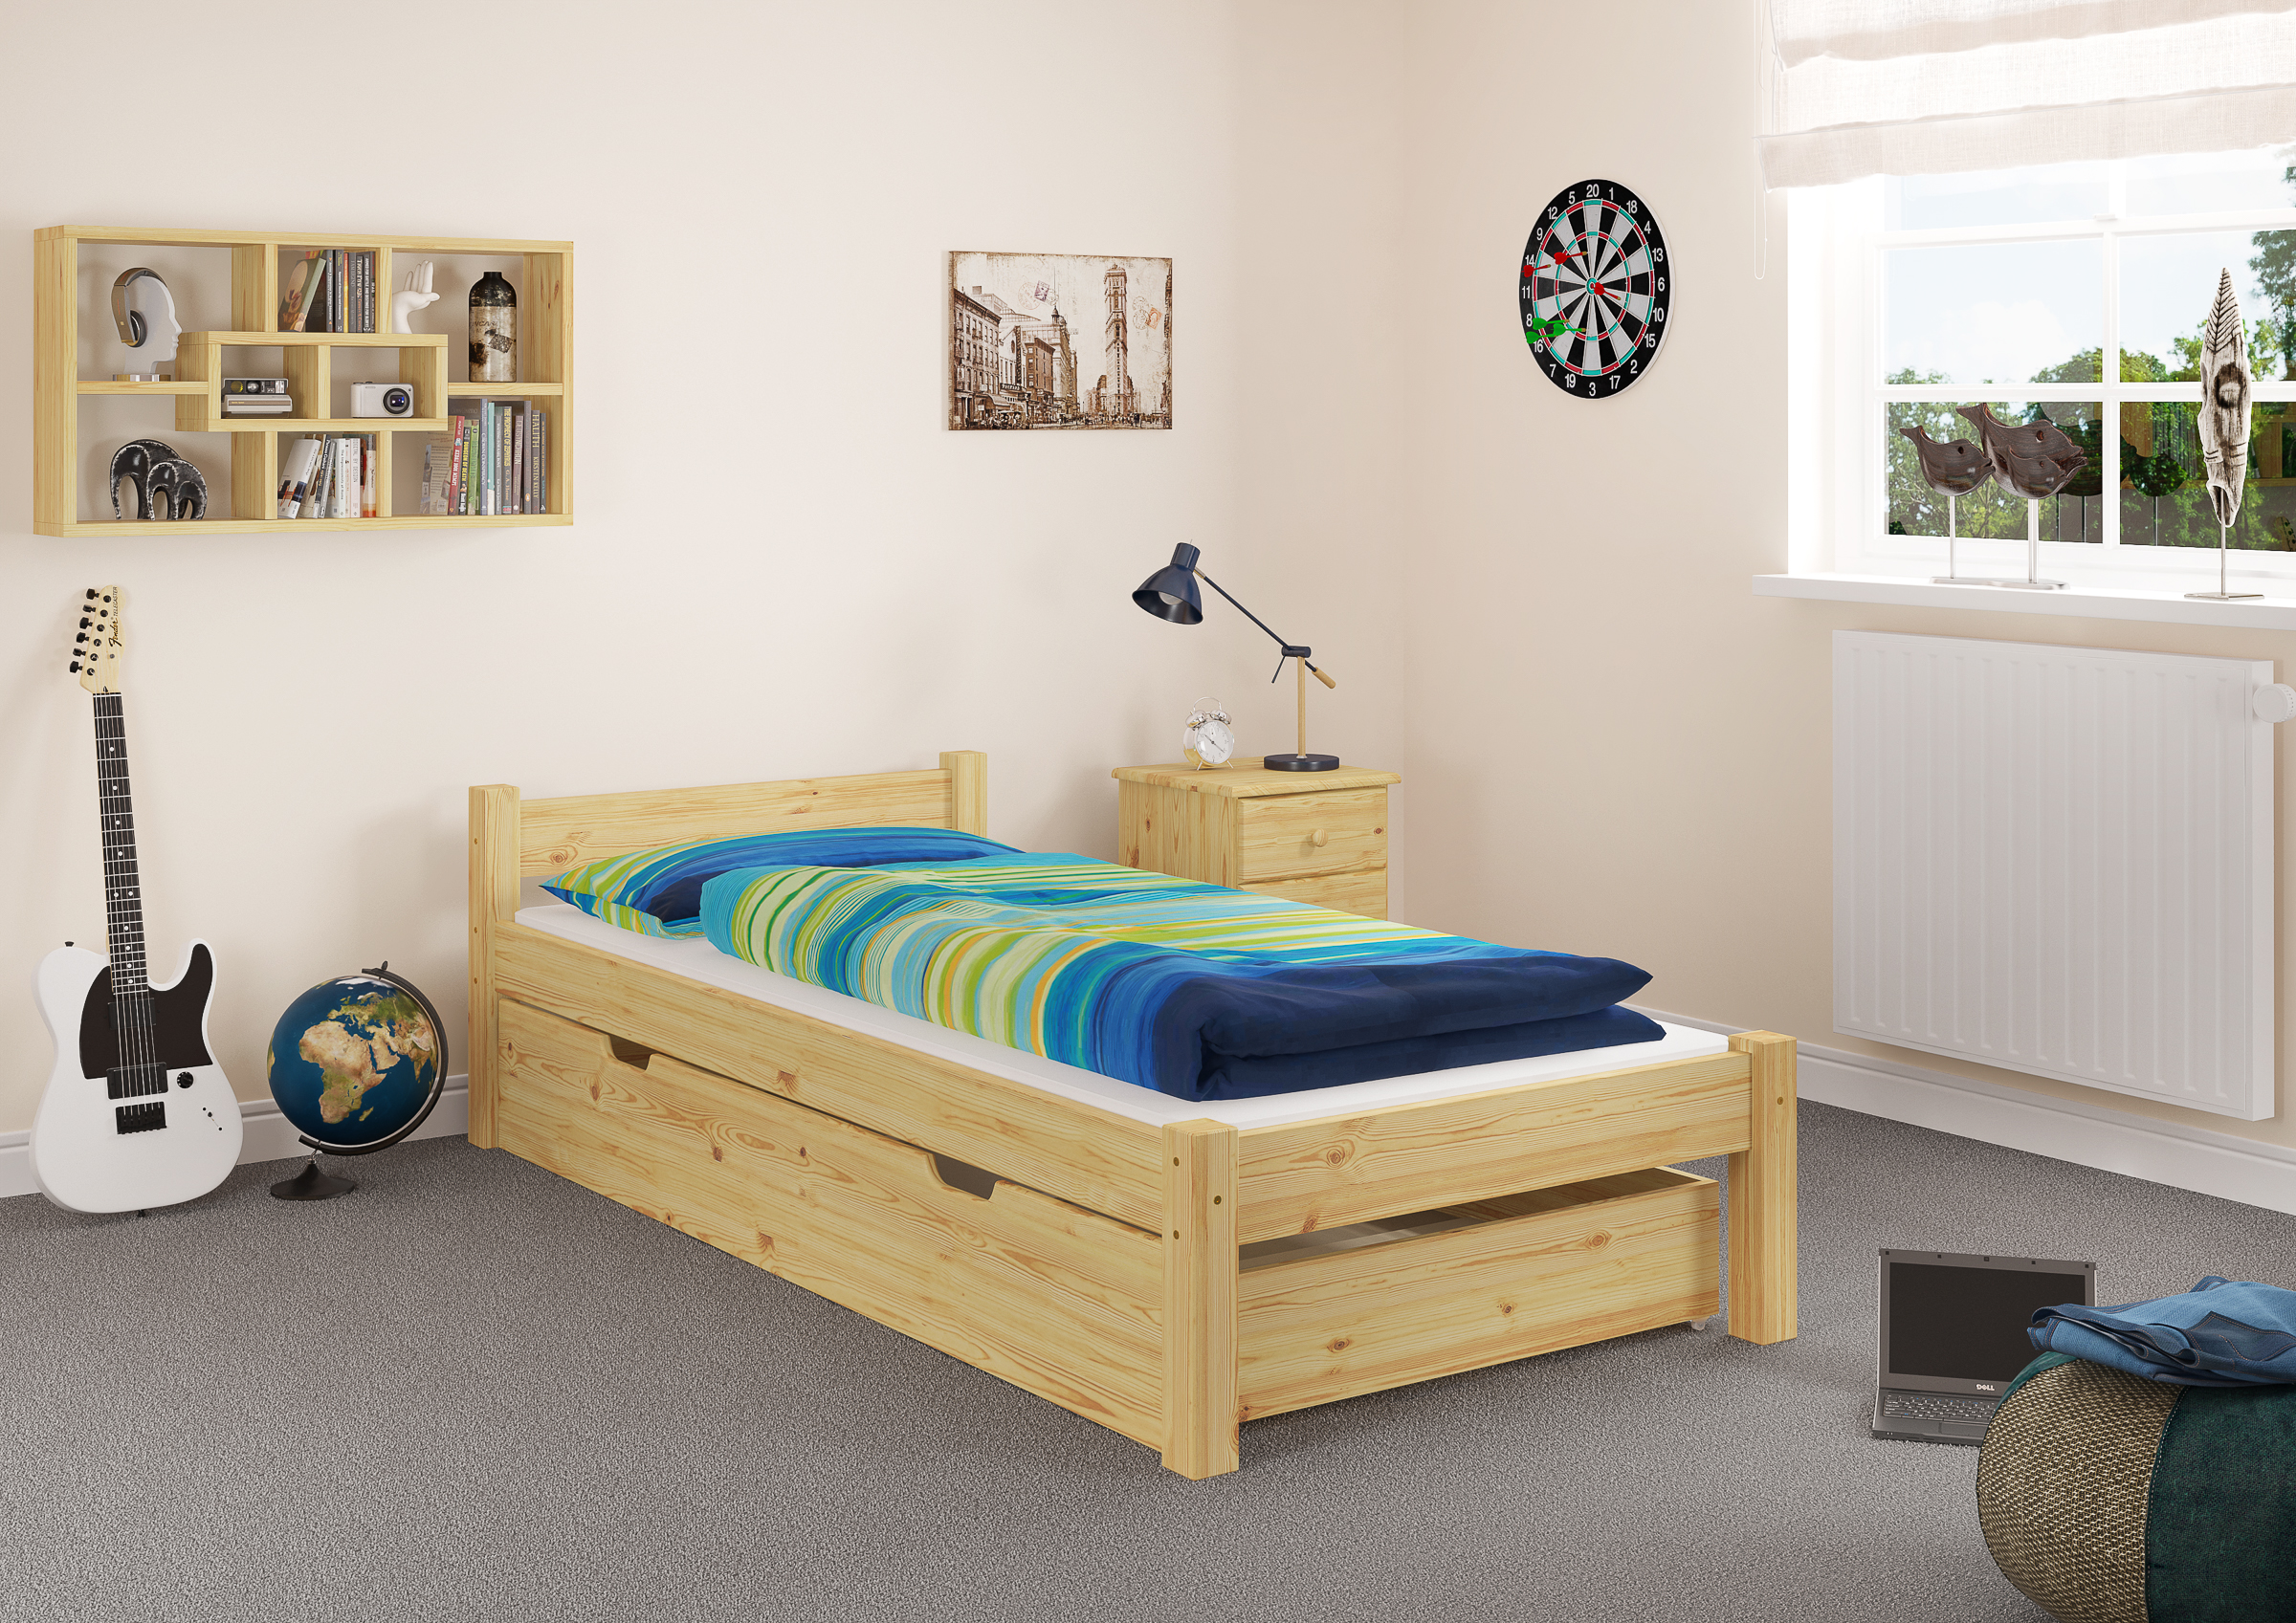 futonbett massivholz bett einzelbett bettgestell 90x200 kiefer natur ebay. Black Bedroom Furniture Sets. Home Design Ideas